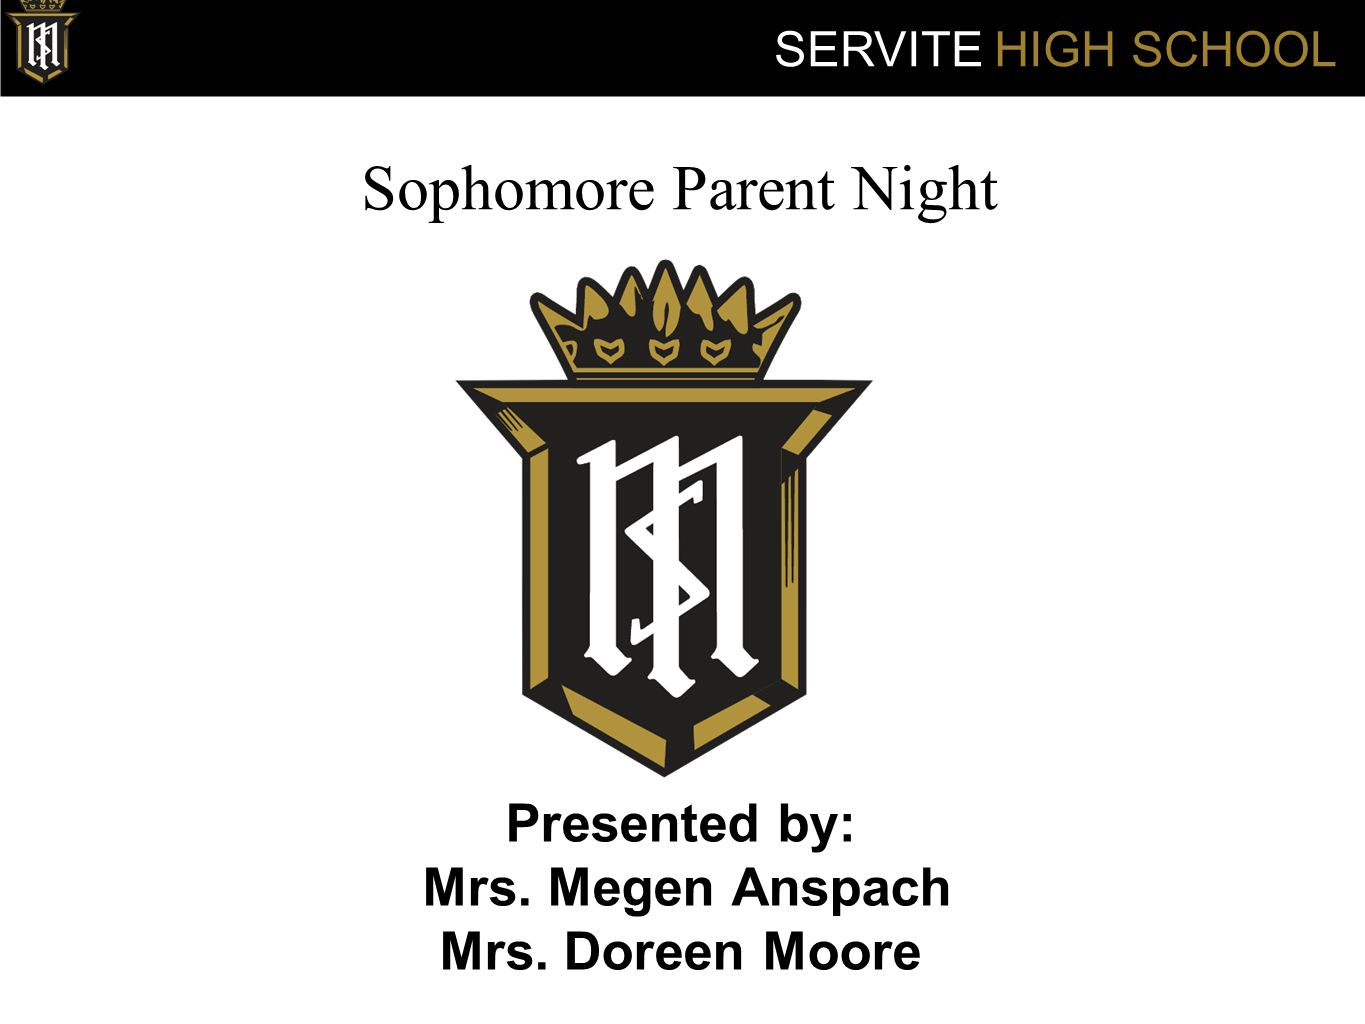 Sophomore Parent Night Presented by: Mrs. Megen Anspach Mrs. Doreen Moore SERVITE HIGH SCHOOL